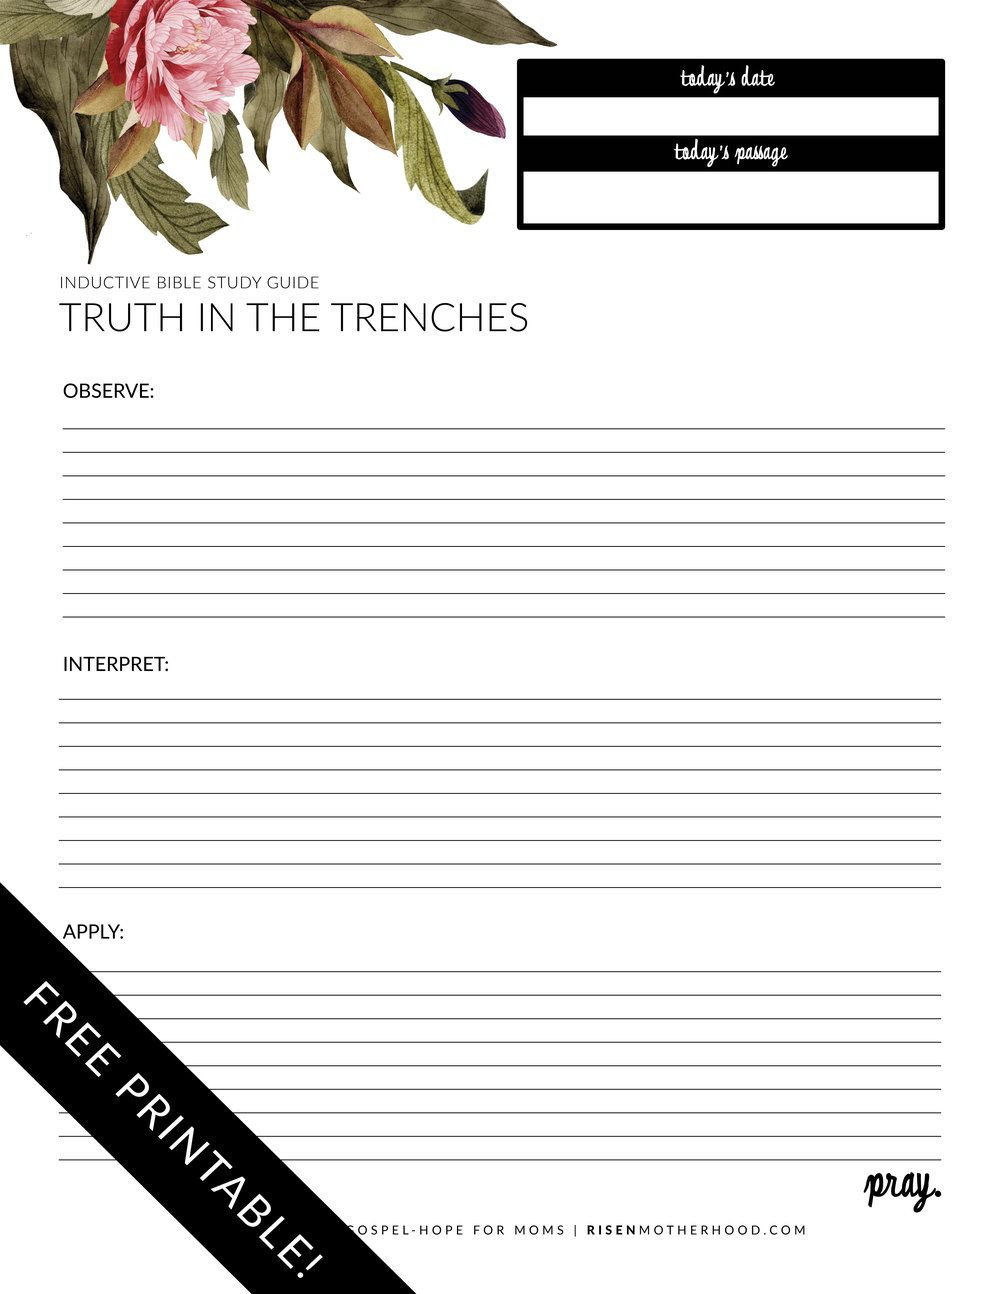 Free Printable Religious Worksheets Free Printable Inductive Bible Study Worksheets & Panion